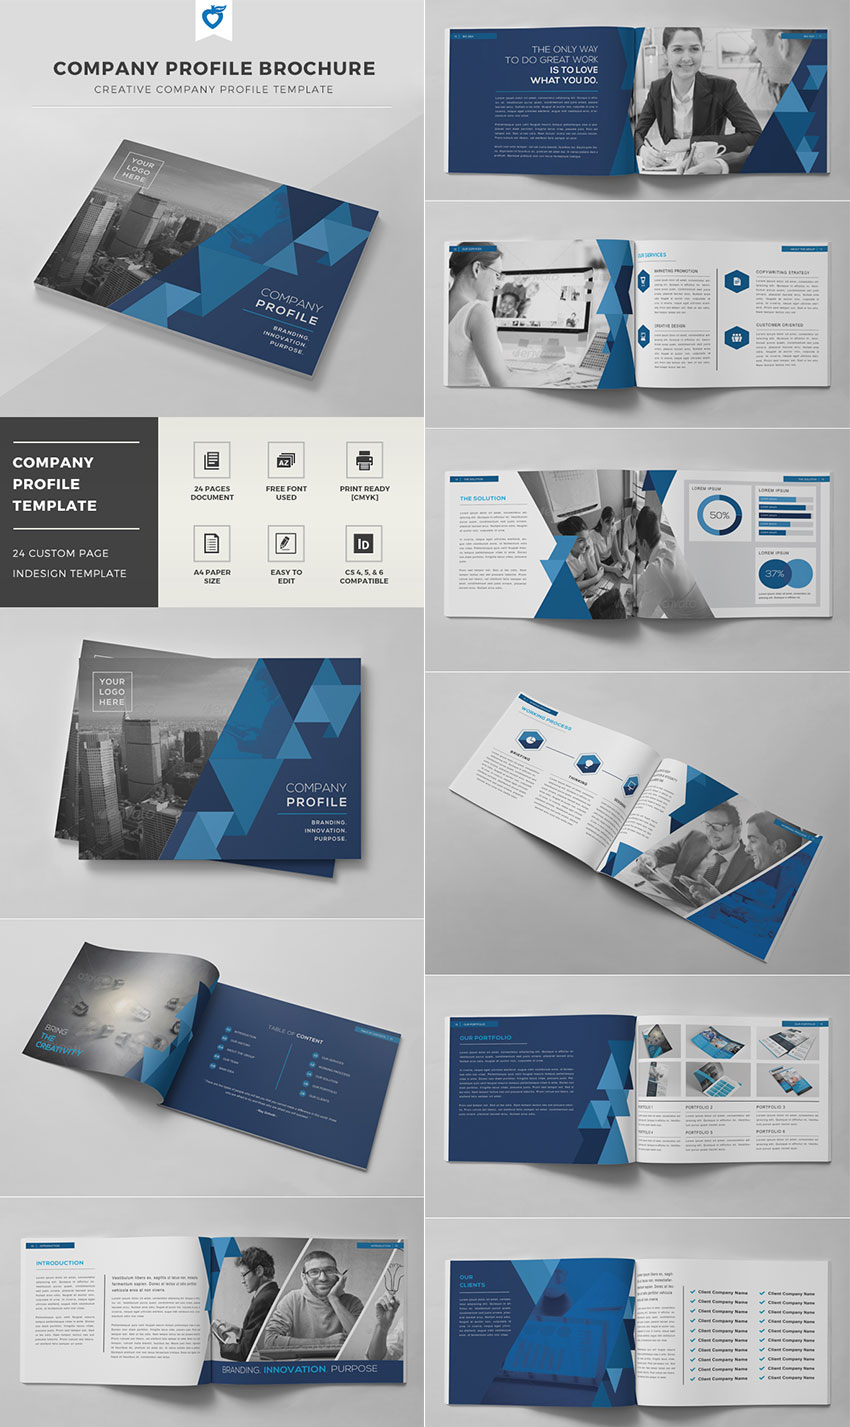 20 best indesign brochure templates for creative business marketing company profile brochure indd template flashek Image collections